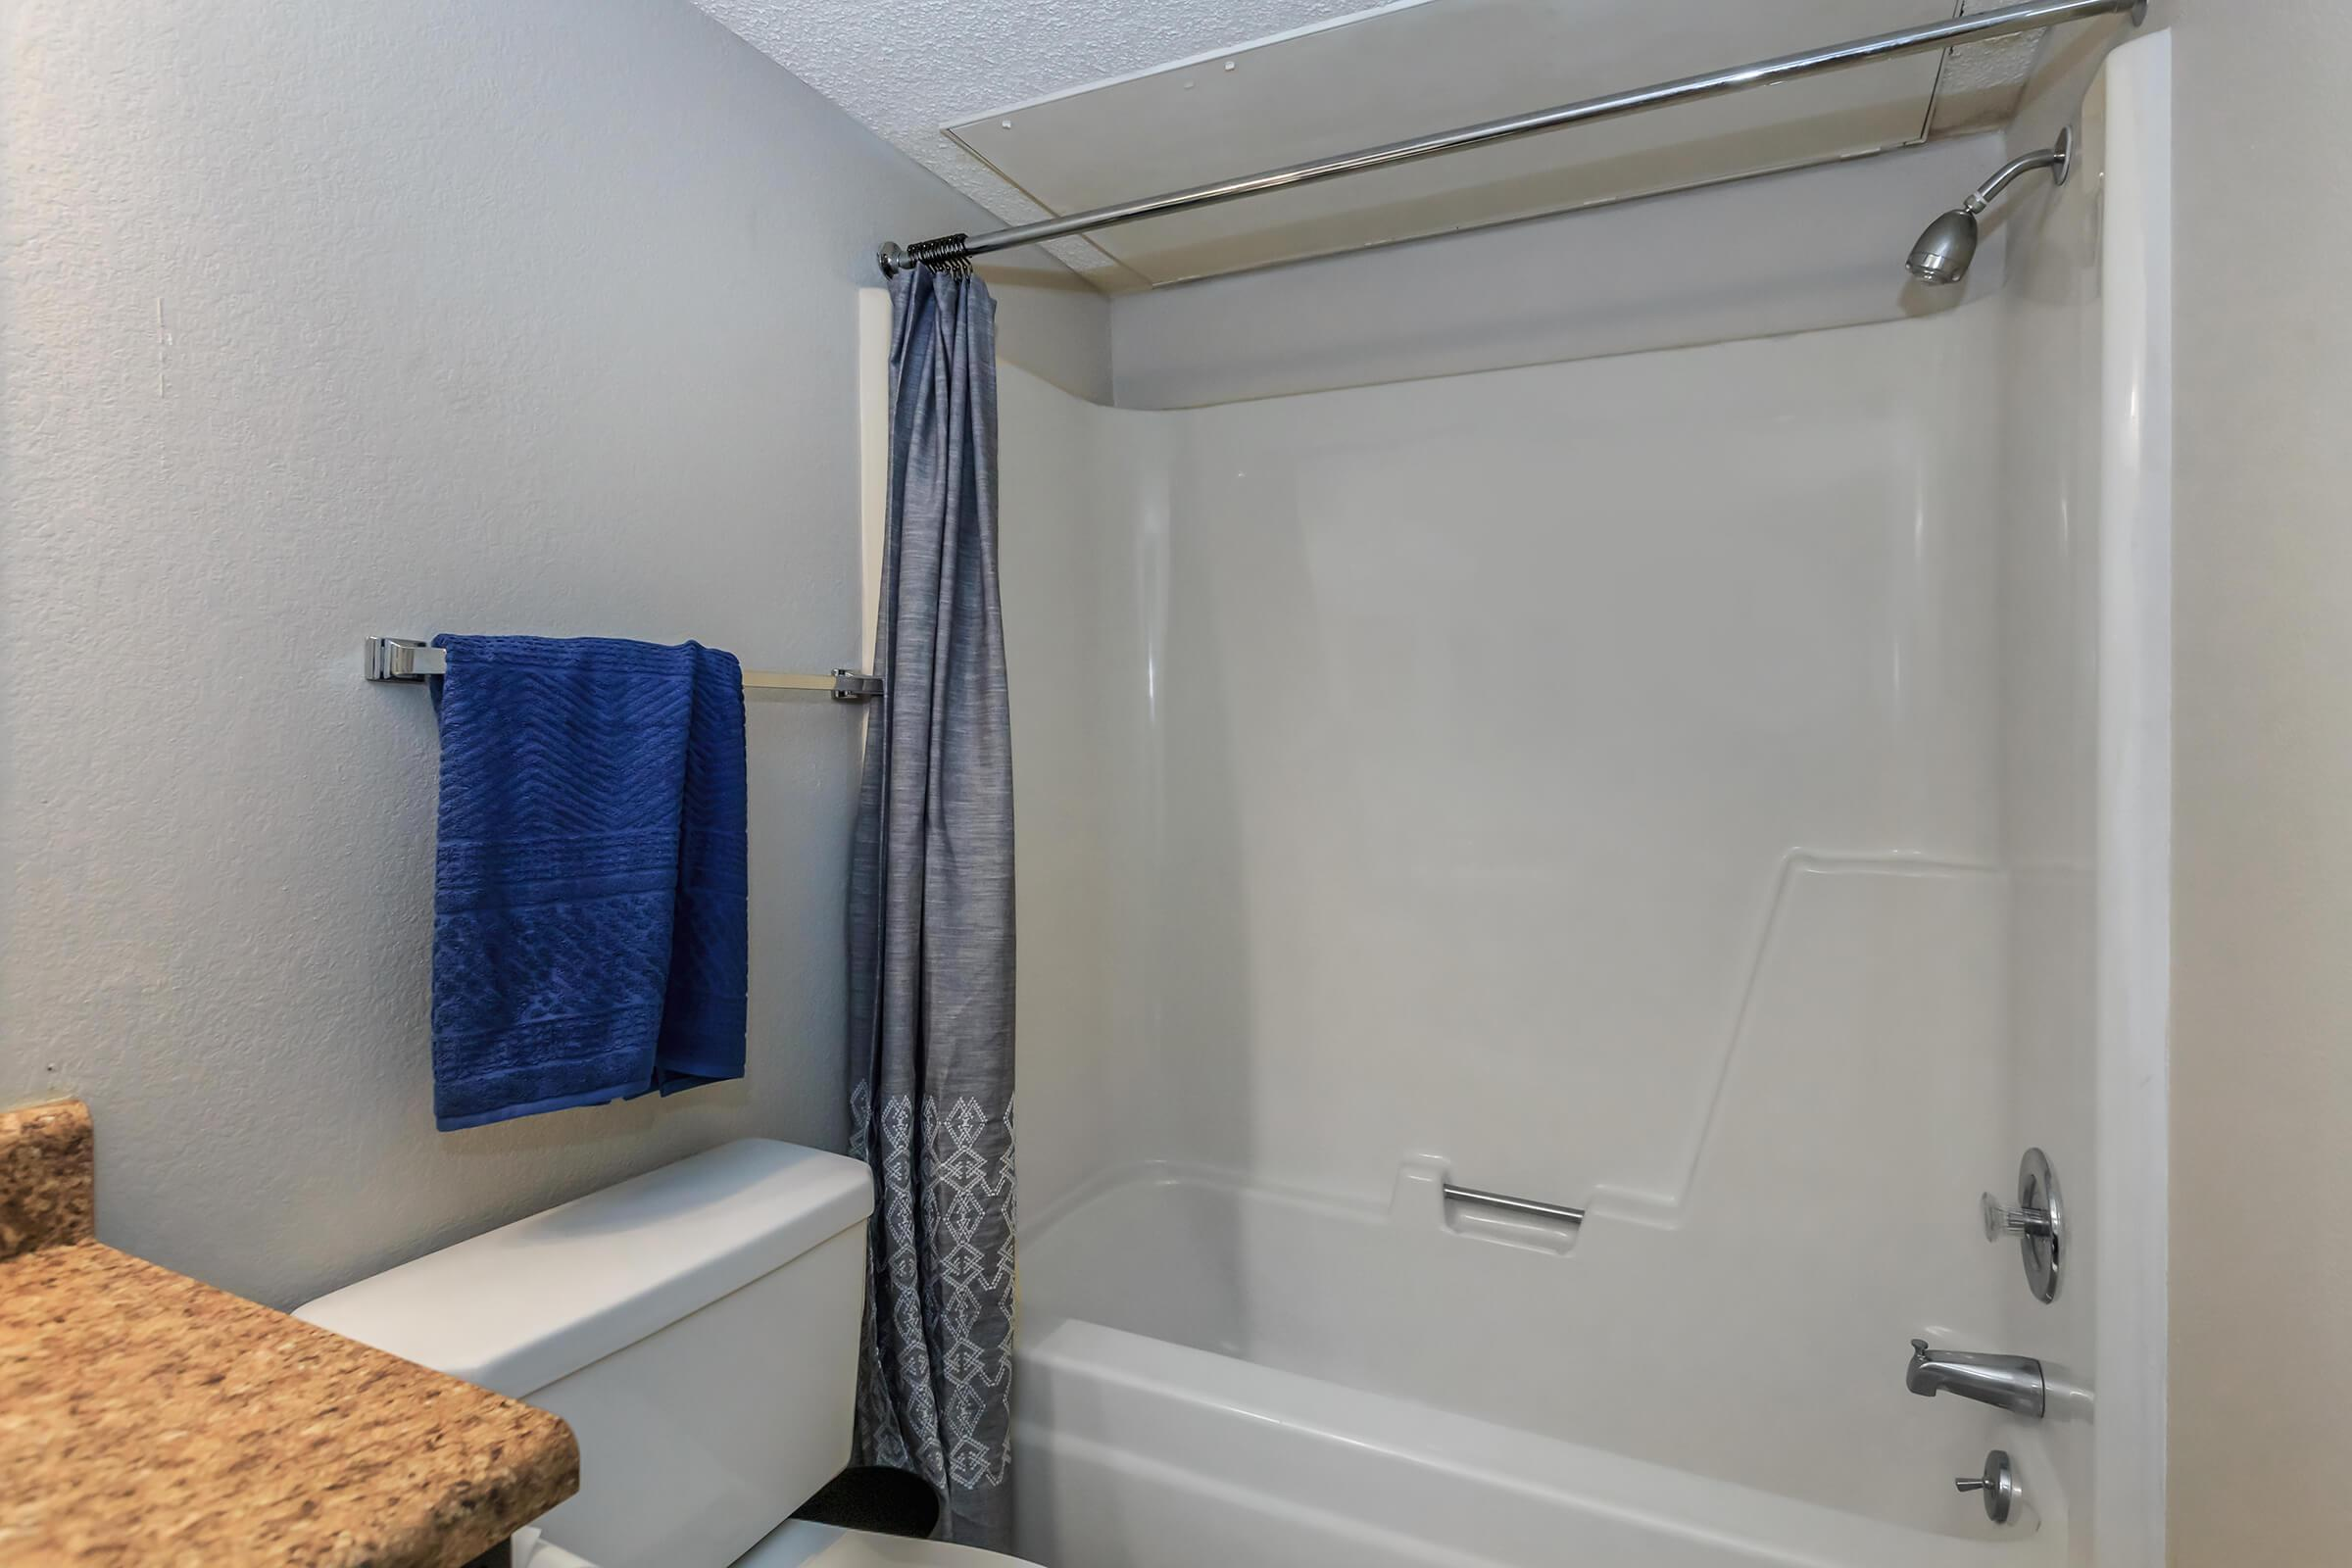 a room with a tub and shower curtain